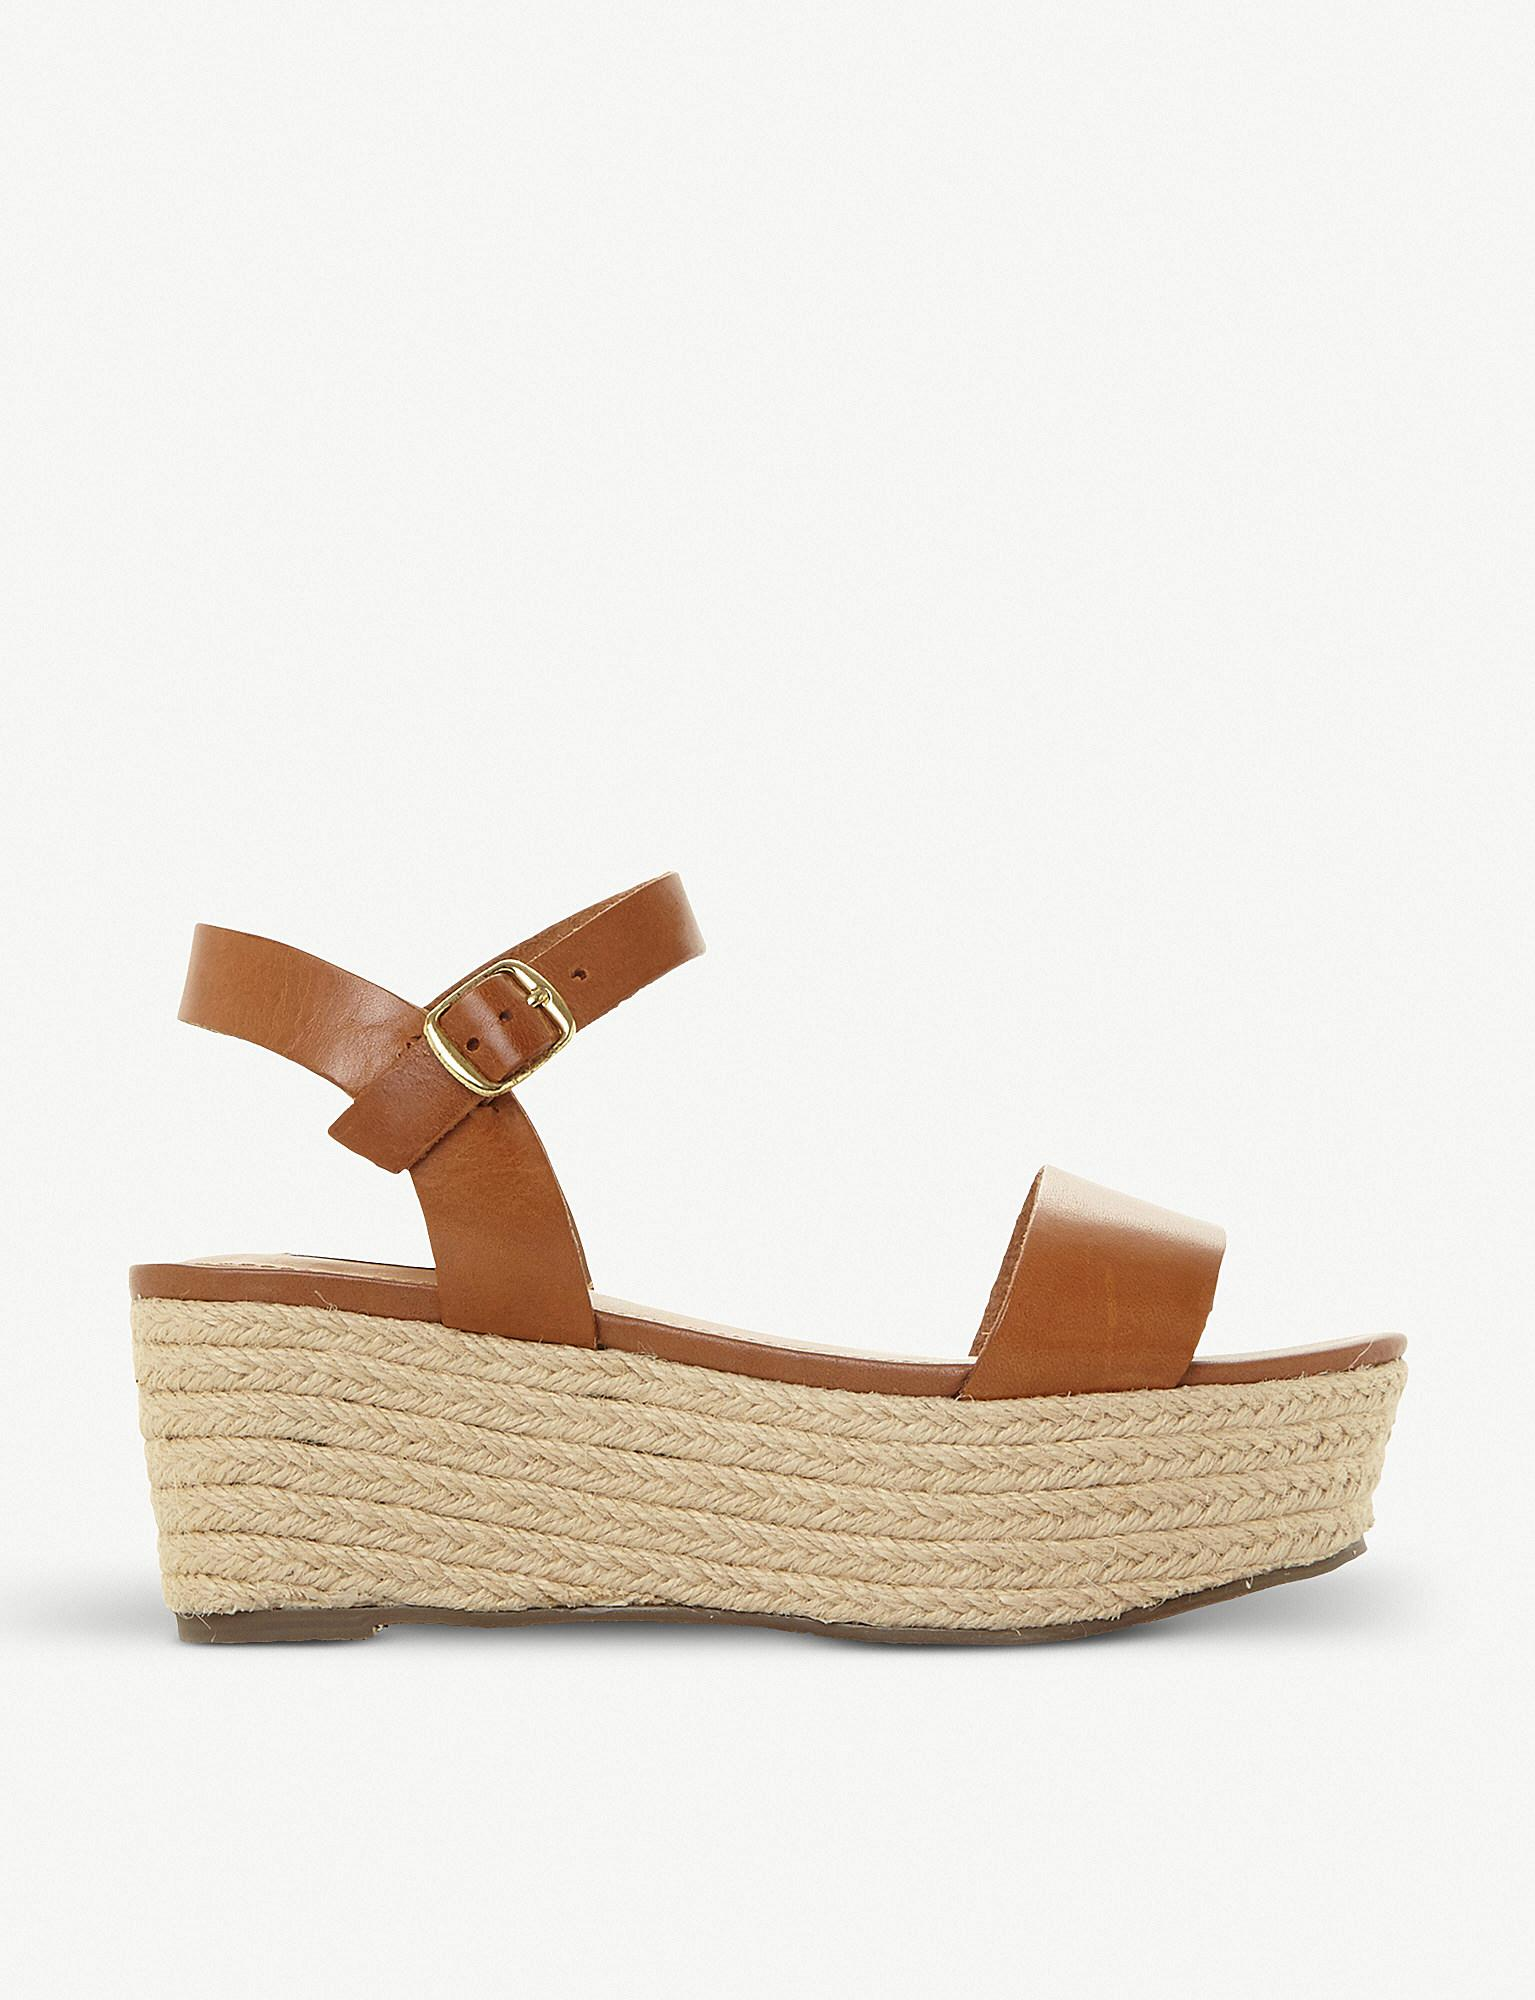 c44c89e3dec Lyst - Steve Madden Busy Sm Leather And Jute Platform Sandals in Brown